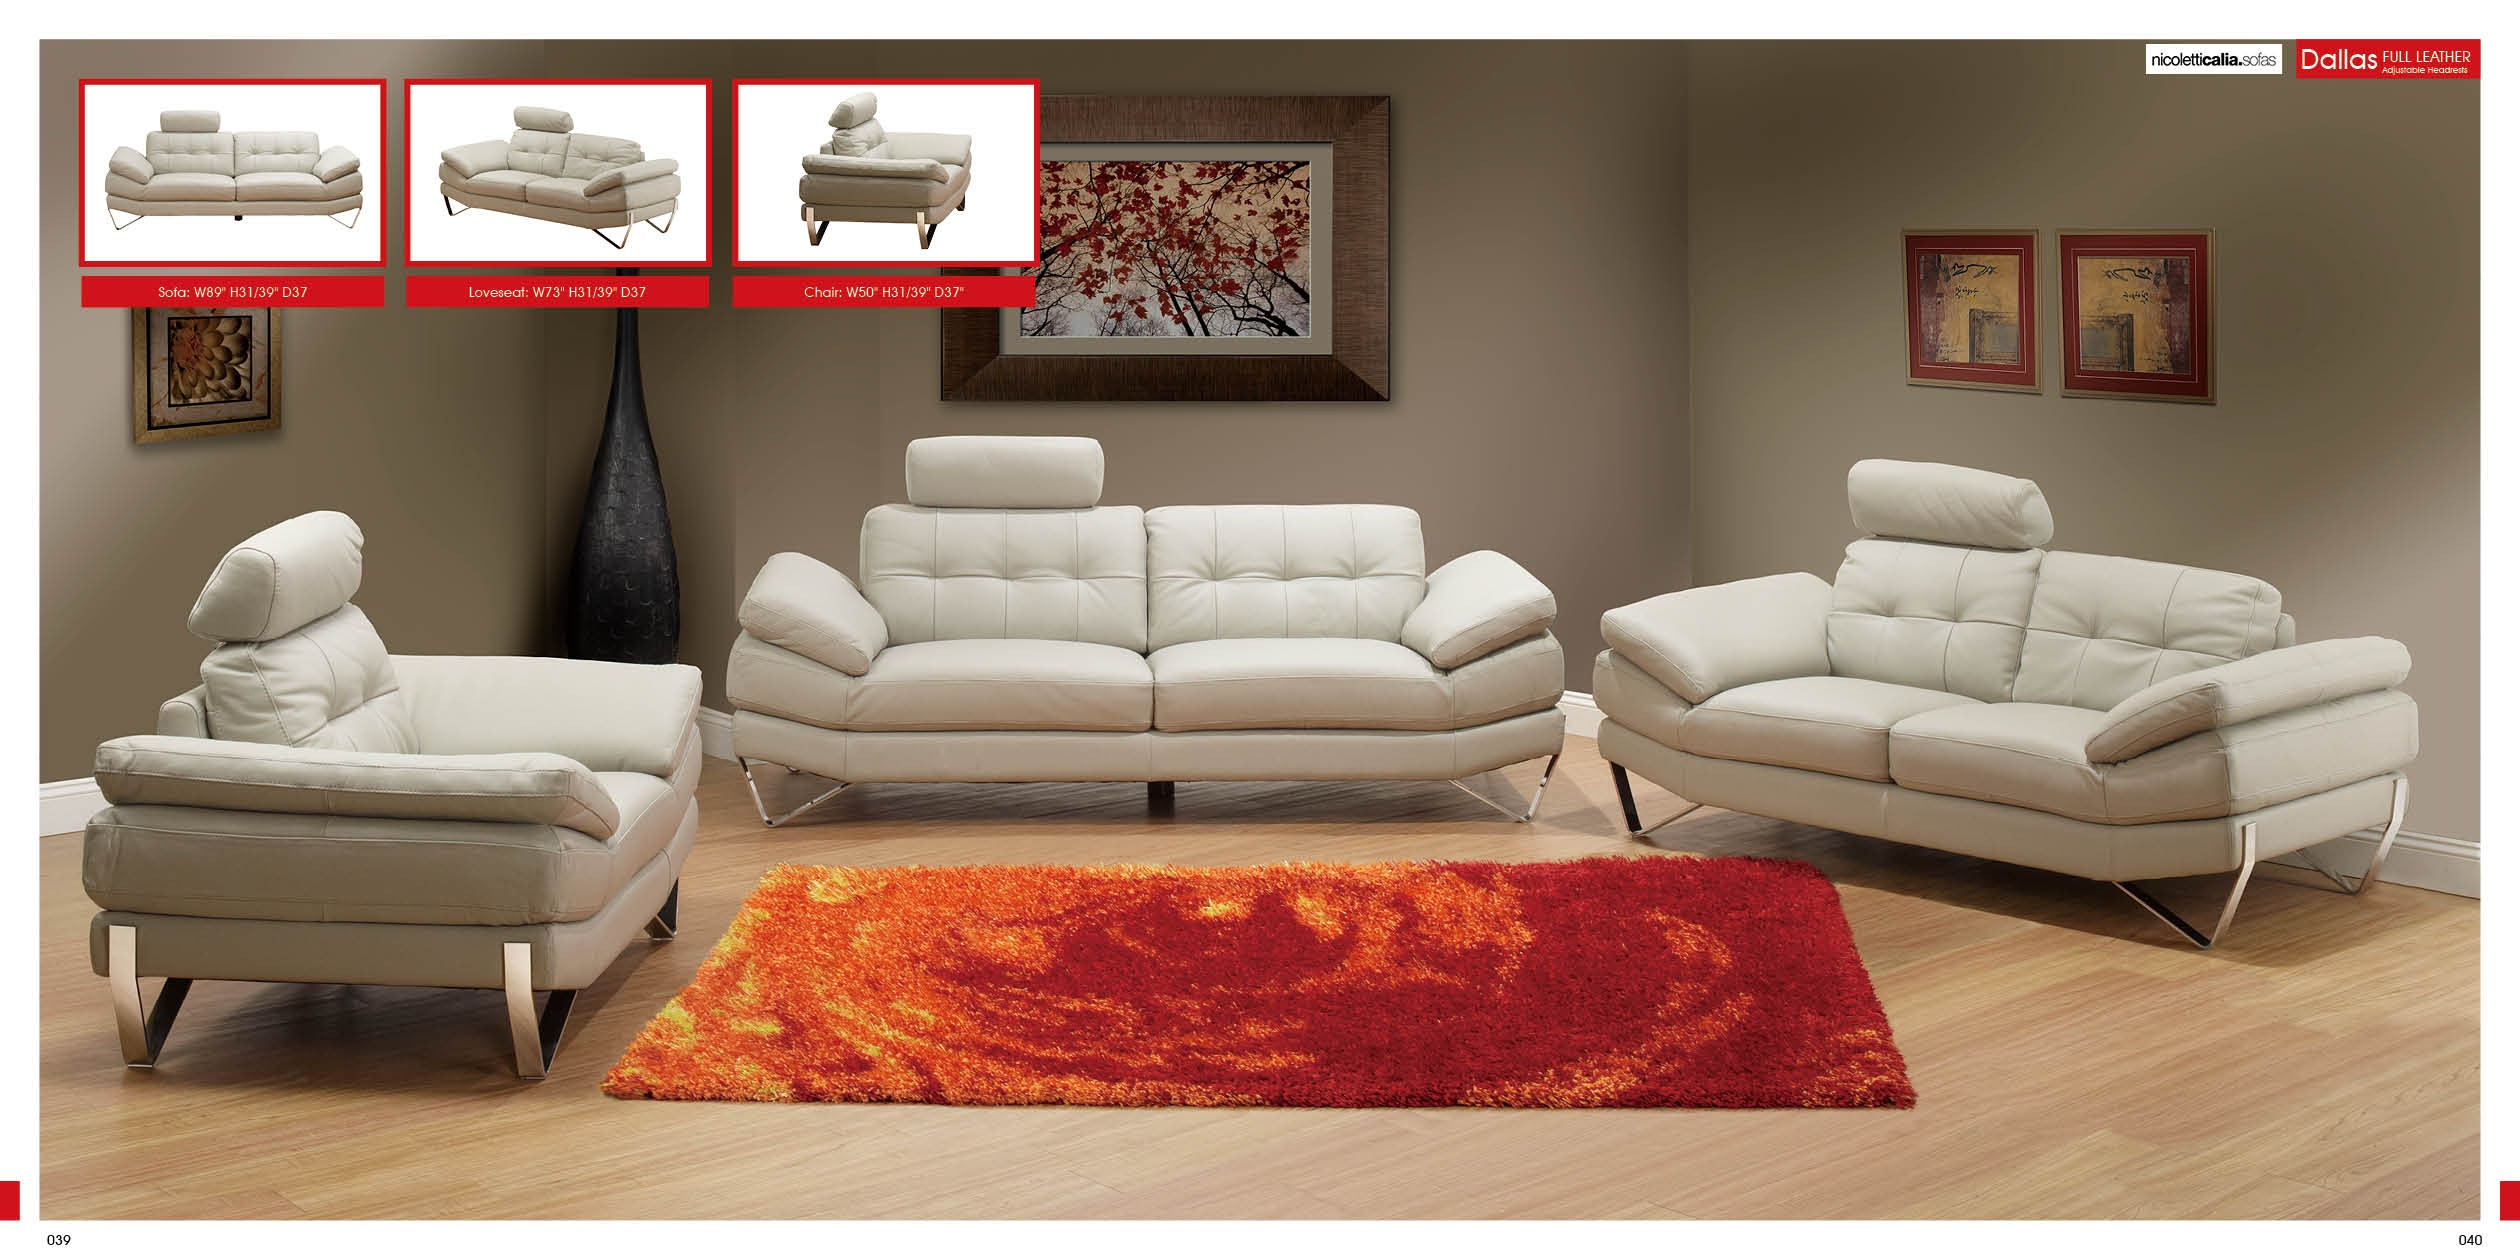 Dallas Sofa set By Nicoletti. Dallas Sofa Bed By ESF buy from NOVA interiors contemporary